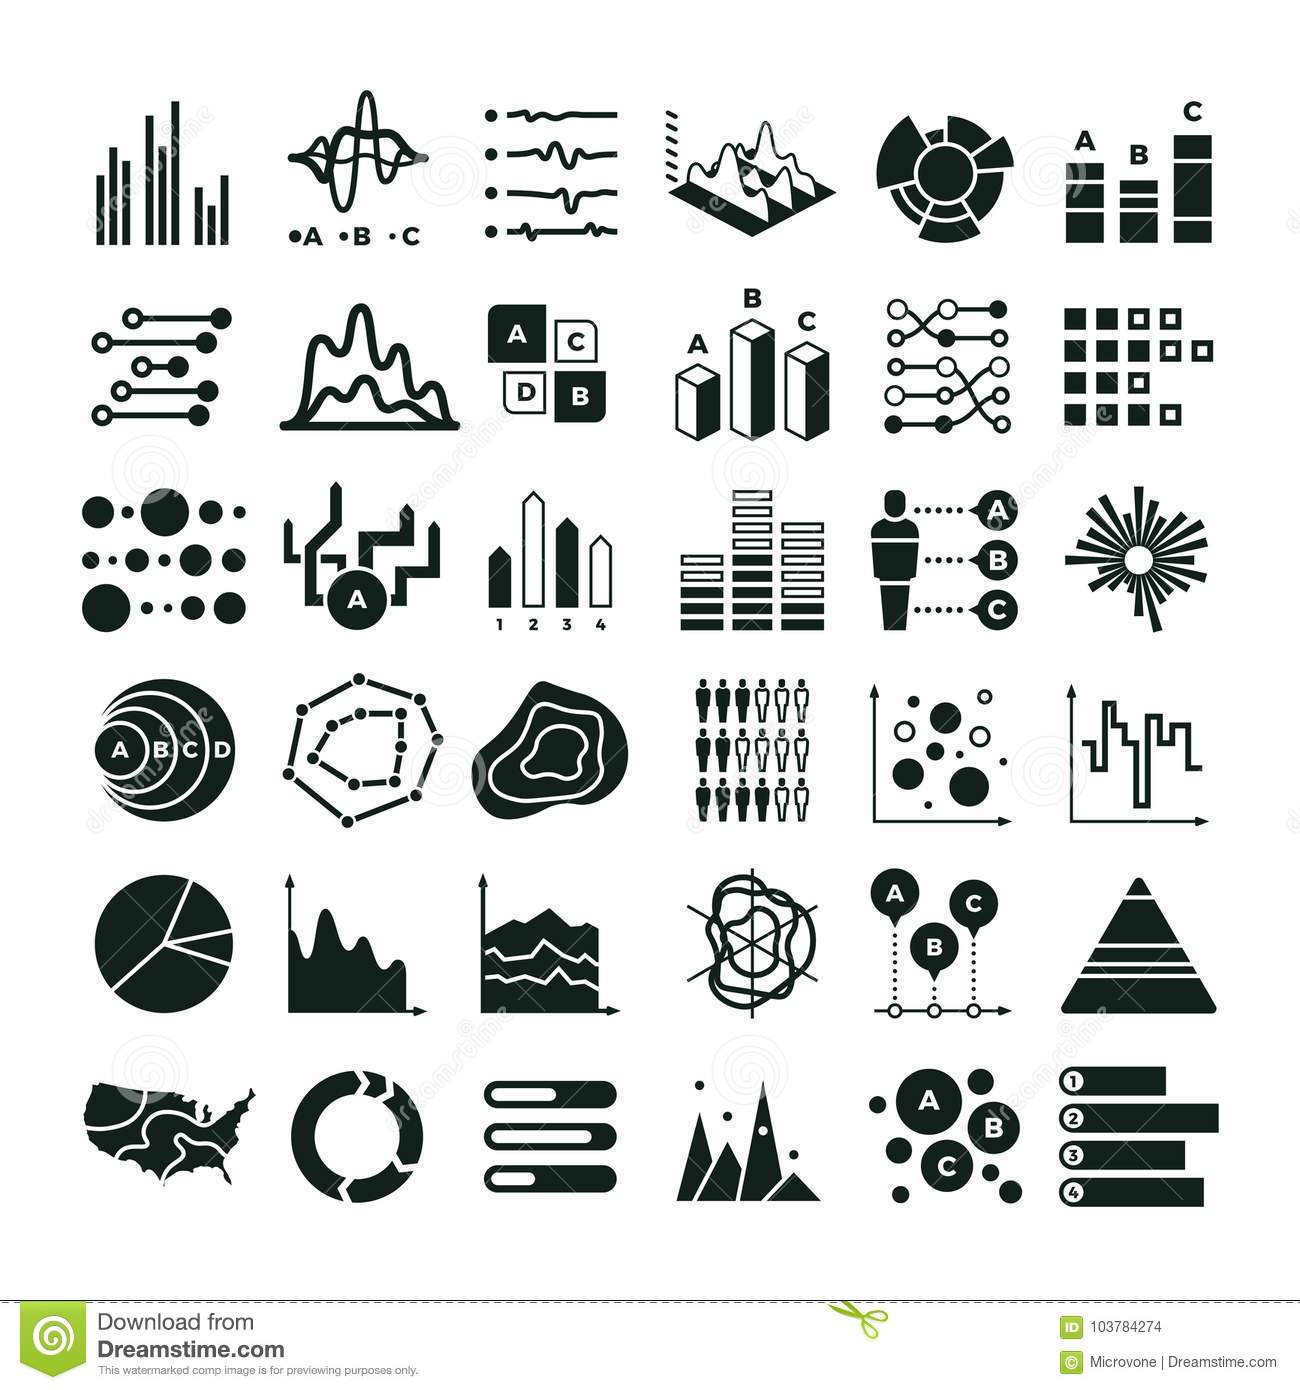 Diagram And Infographic Vector Icons Business Data Chart